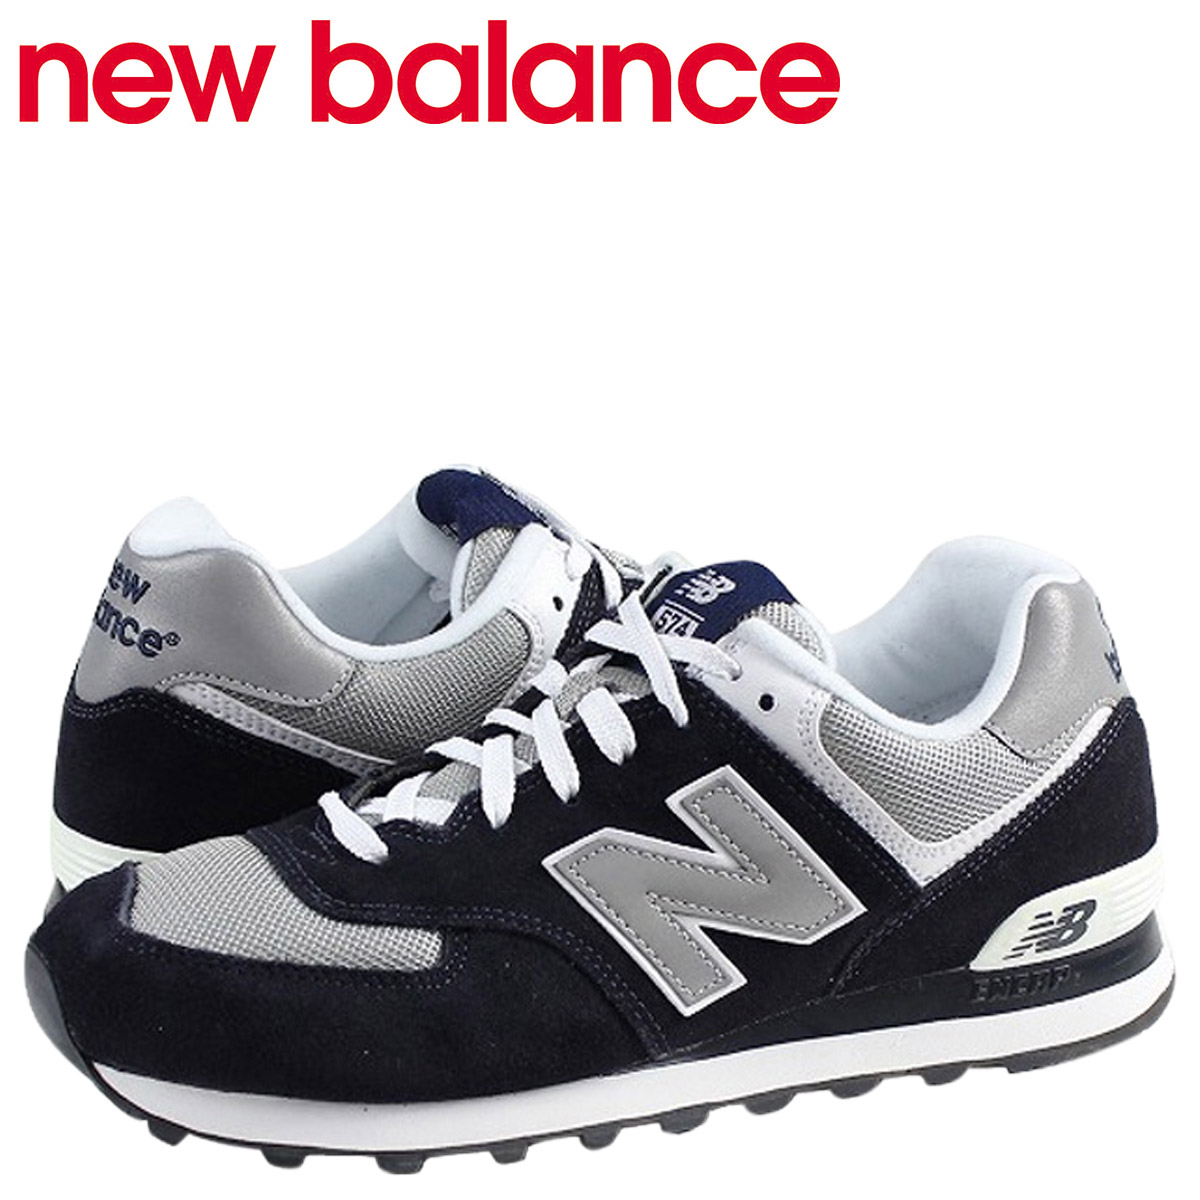 the latest 5484b fb84d new balance New Balance 574 sneakers M574BGS D Wise men shoes navy